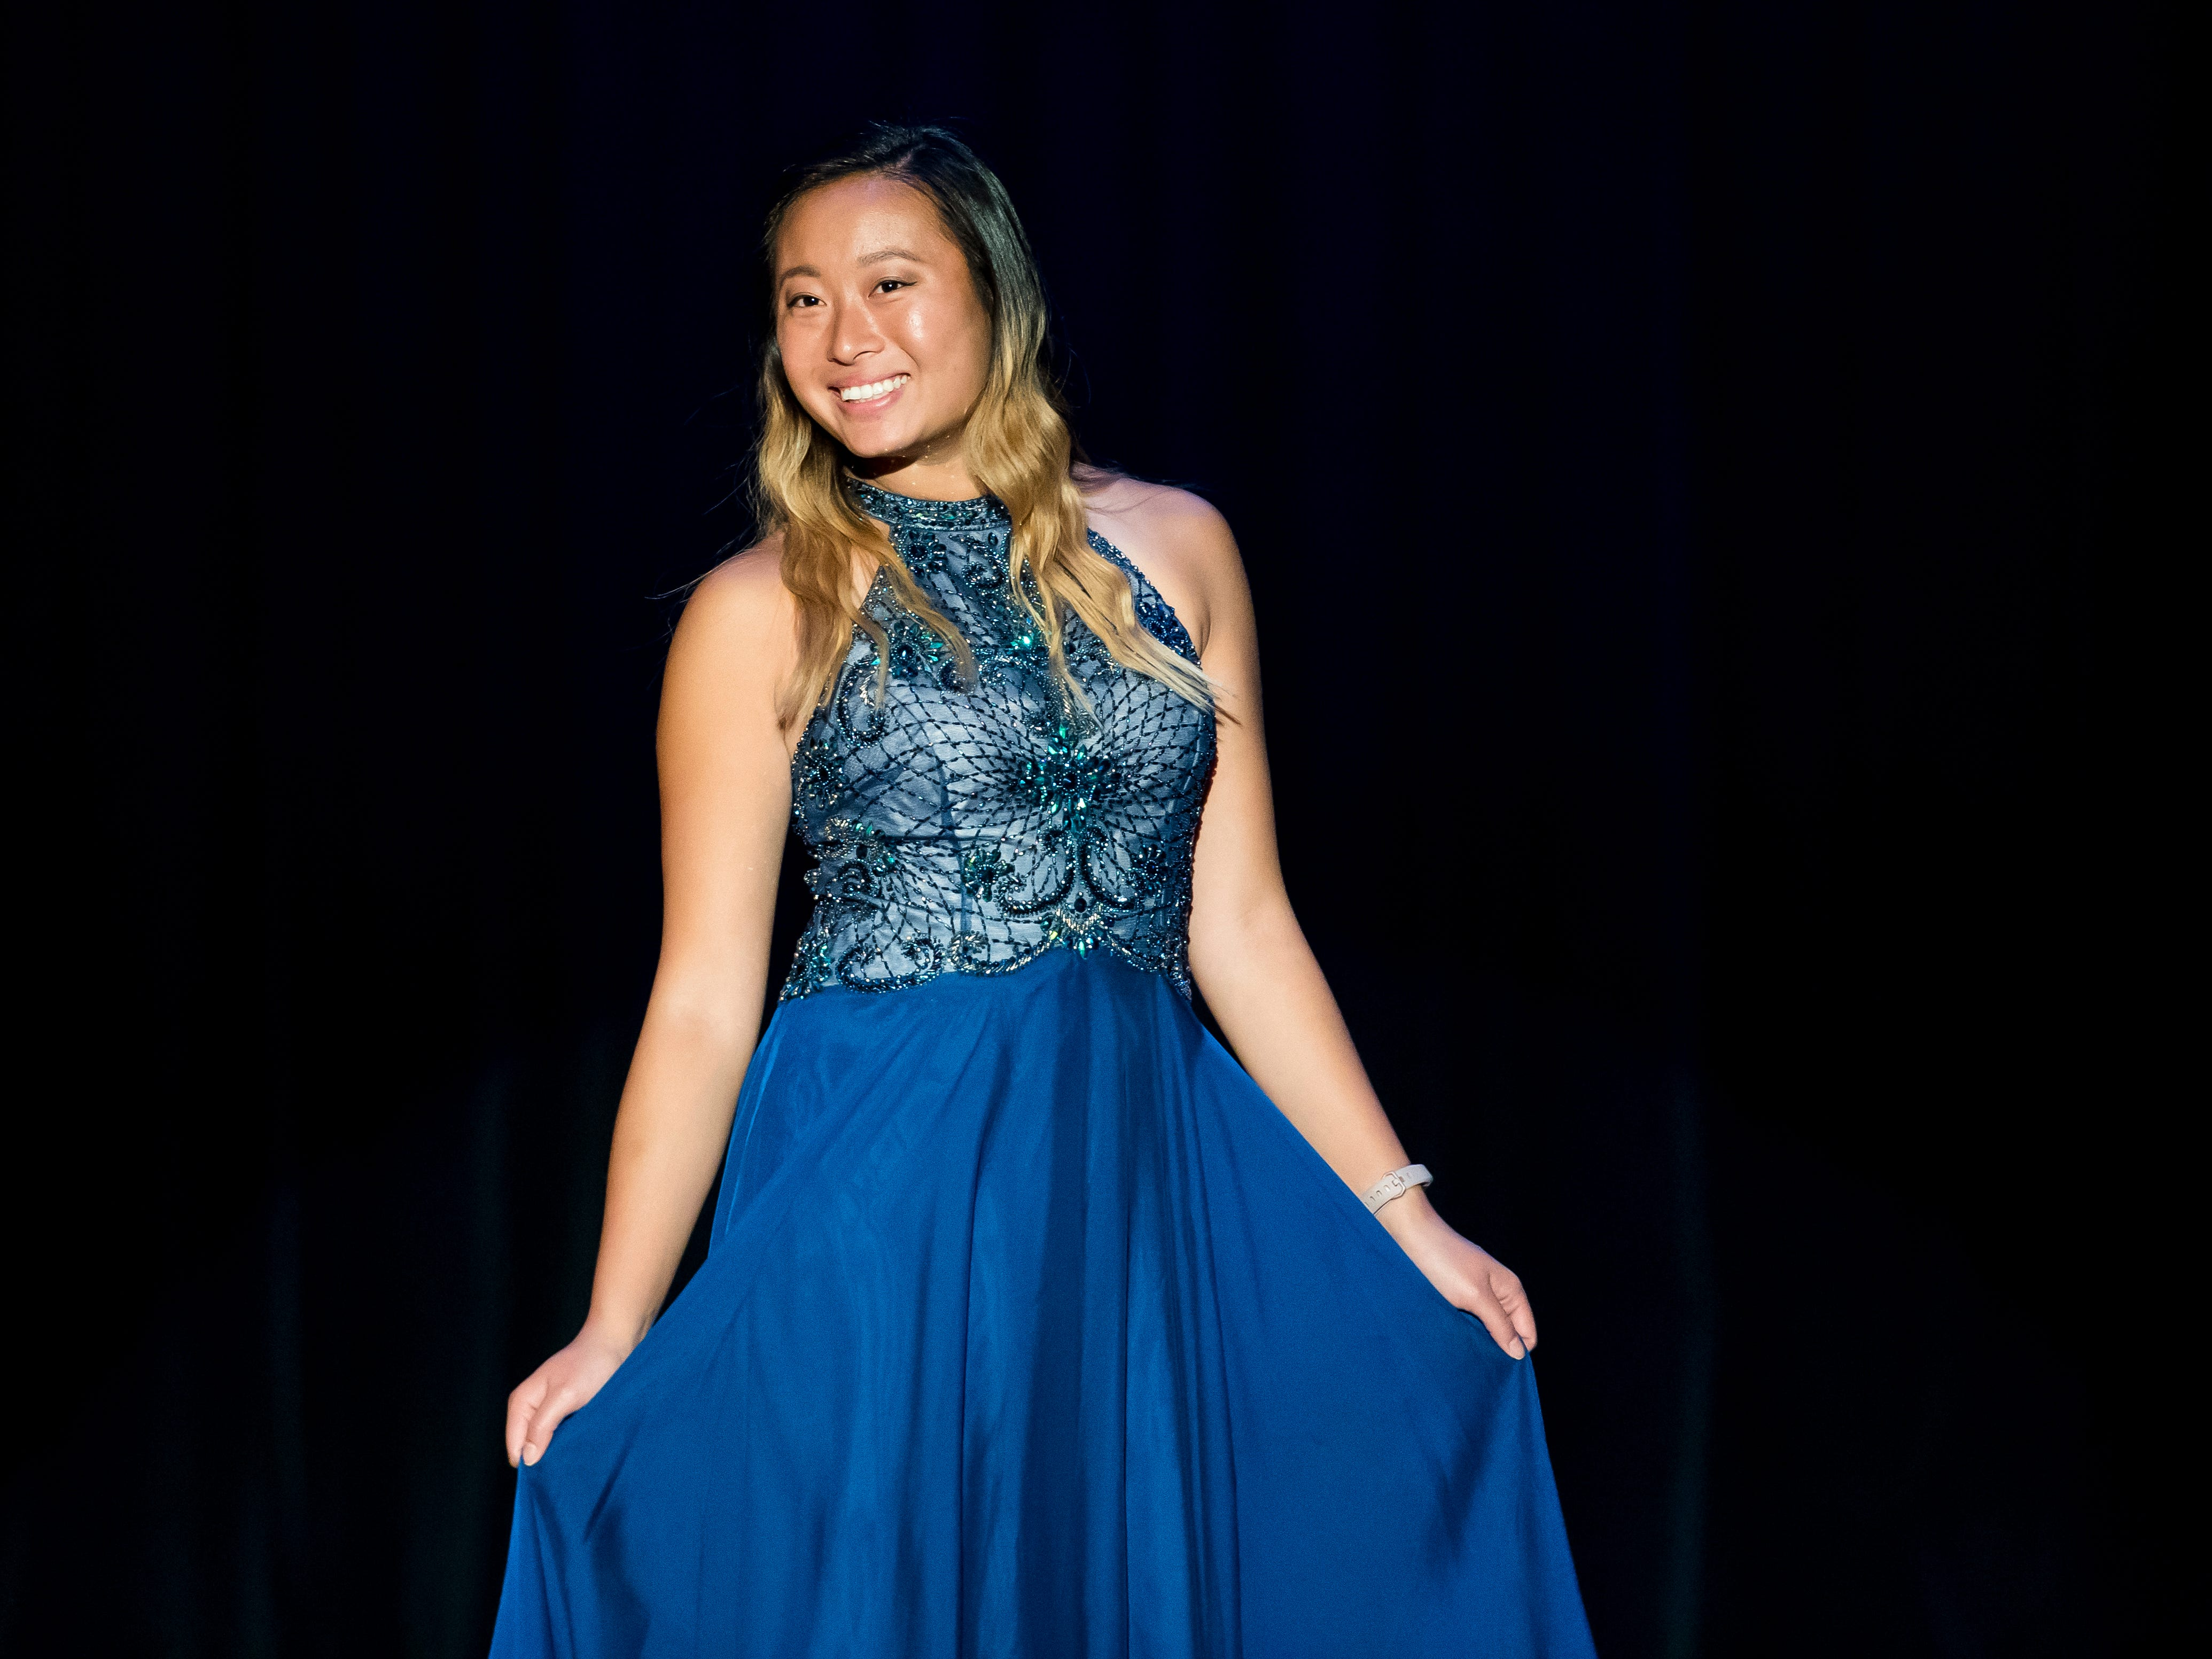 South Western's Karen Yang walks on stage in her evening gown during a rehearsal session for the Miss Hanover Area pageant at New Oxford High School on Oct. 17, 2018.